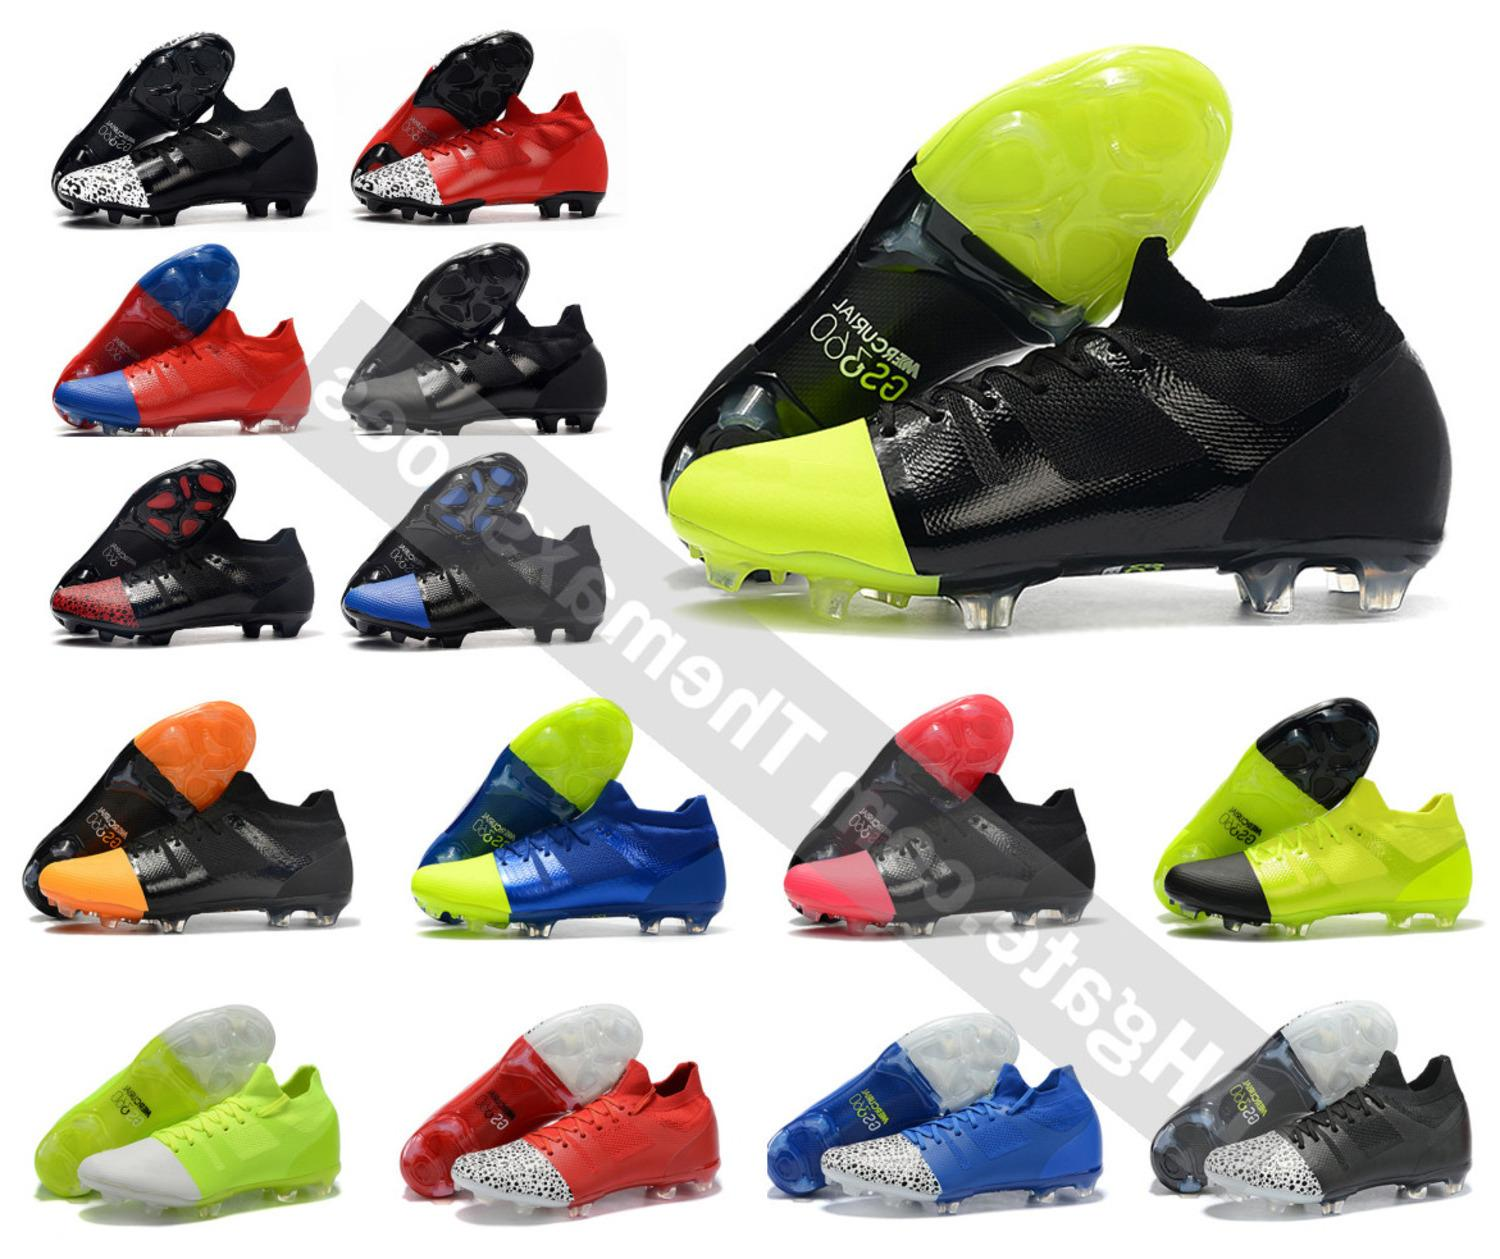 Superfly 360 Hot GS Mercurial Greenspeed Elite FG Green speed High Ankle CR7 Mens High Soccer Shoes Football Boots Cleats Size 39-45